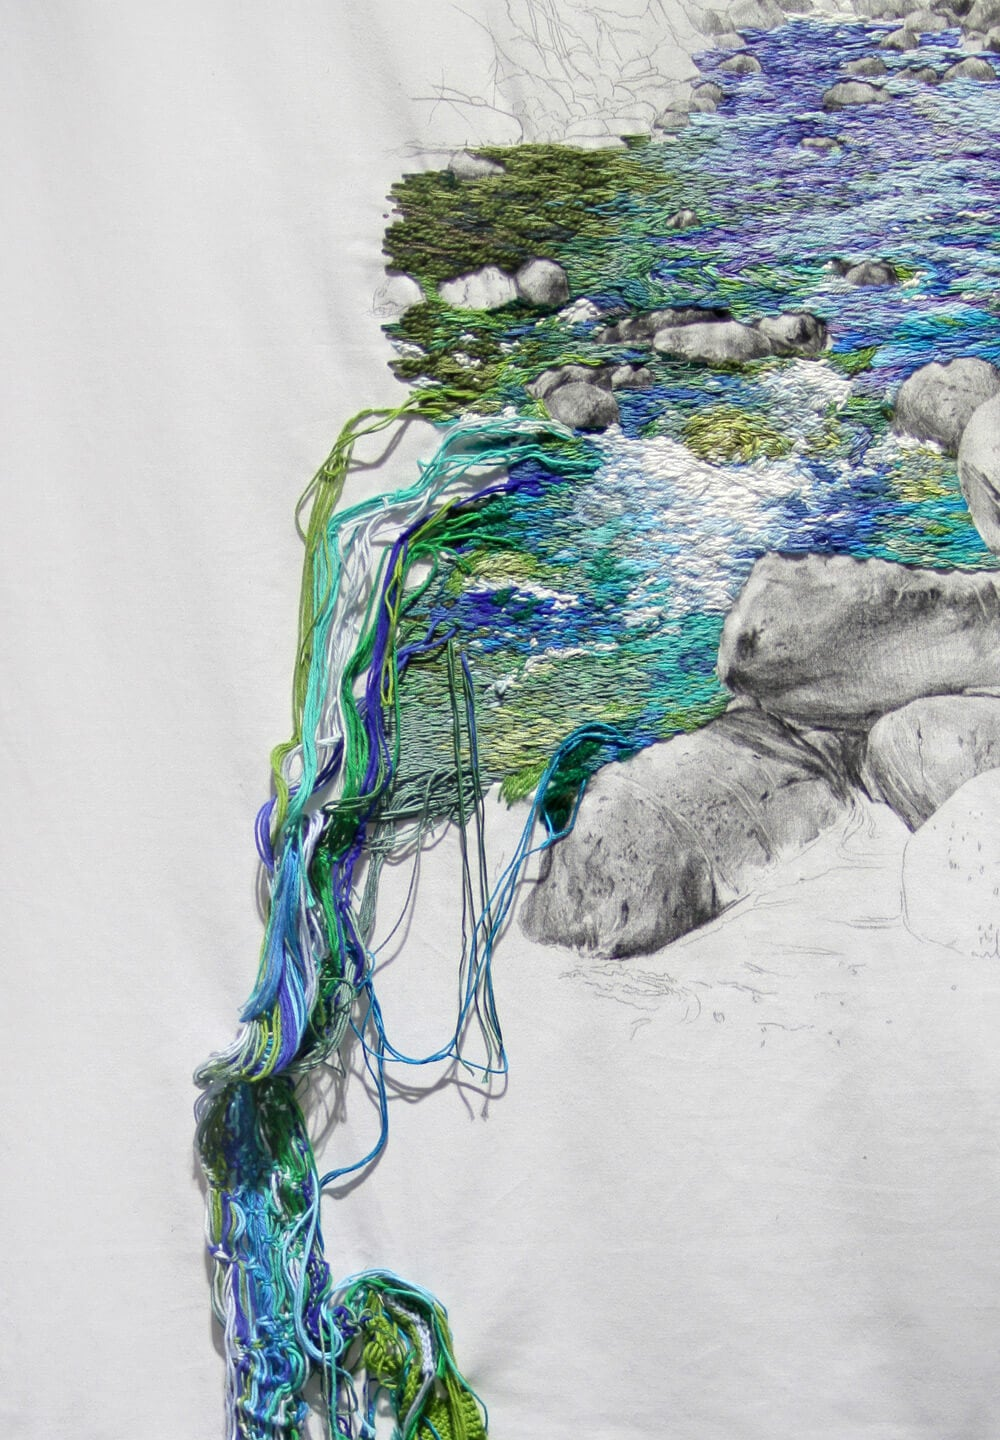 ana-teresa-barboza-embroidered-landscapes-freeyork-7